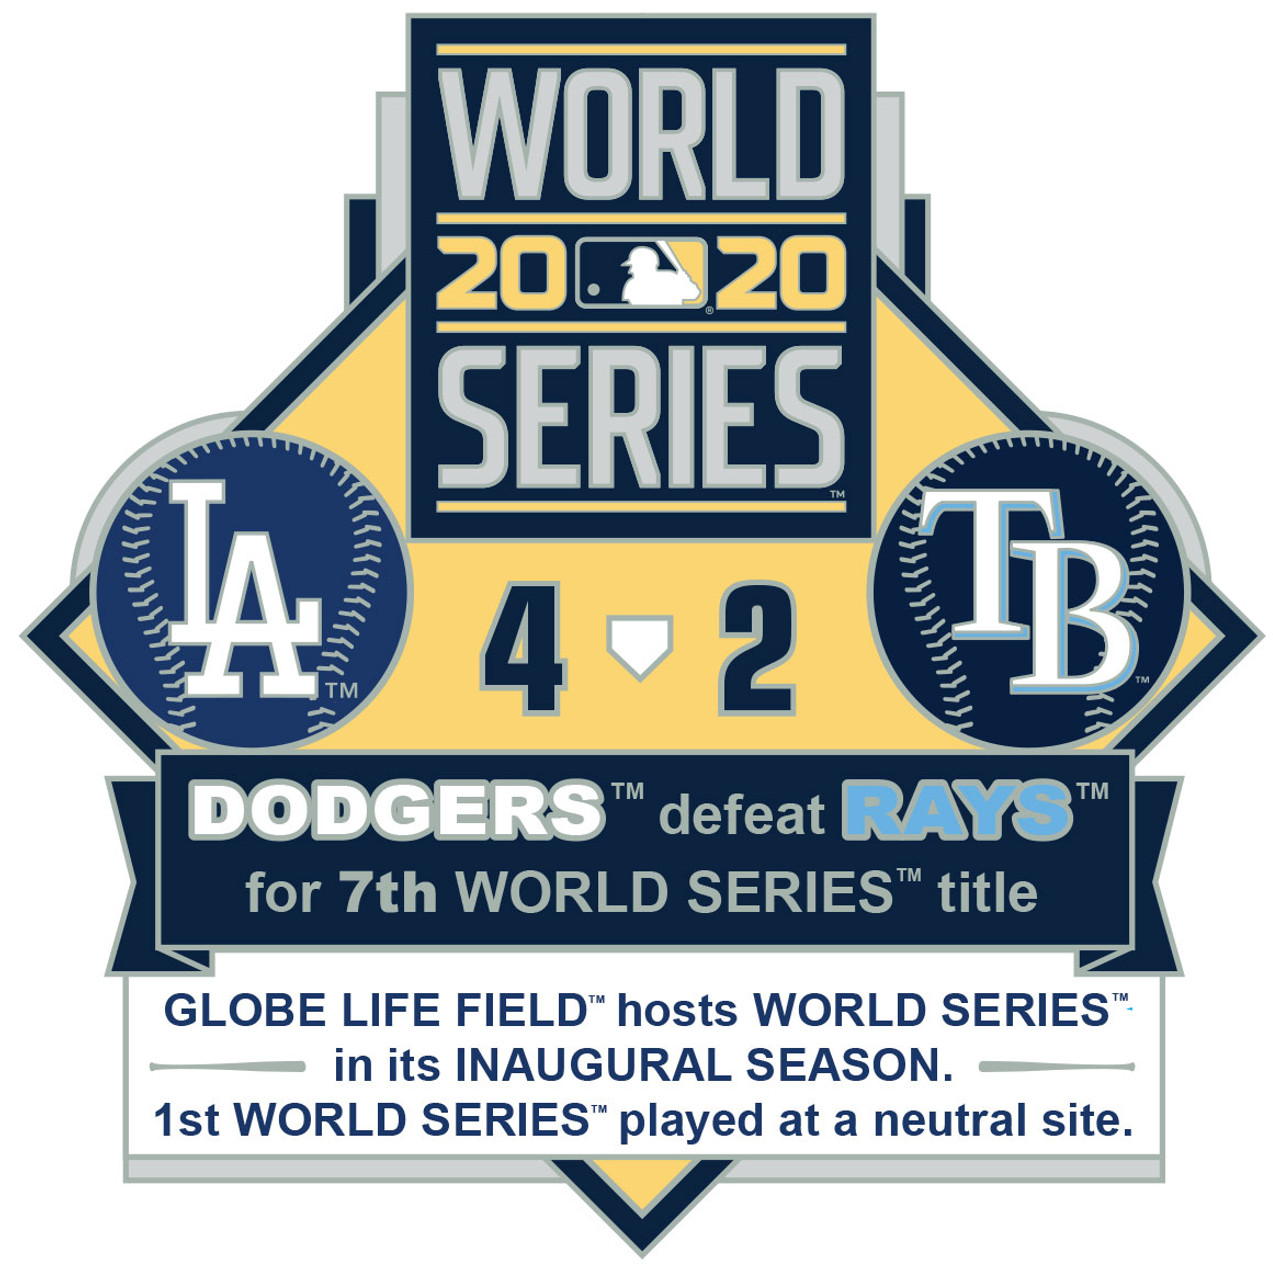 Limited Edition of 2,020 Dodgers vs 2020 World Series Commemorative Lapel Pin Set Rays